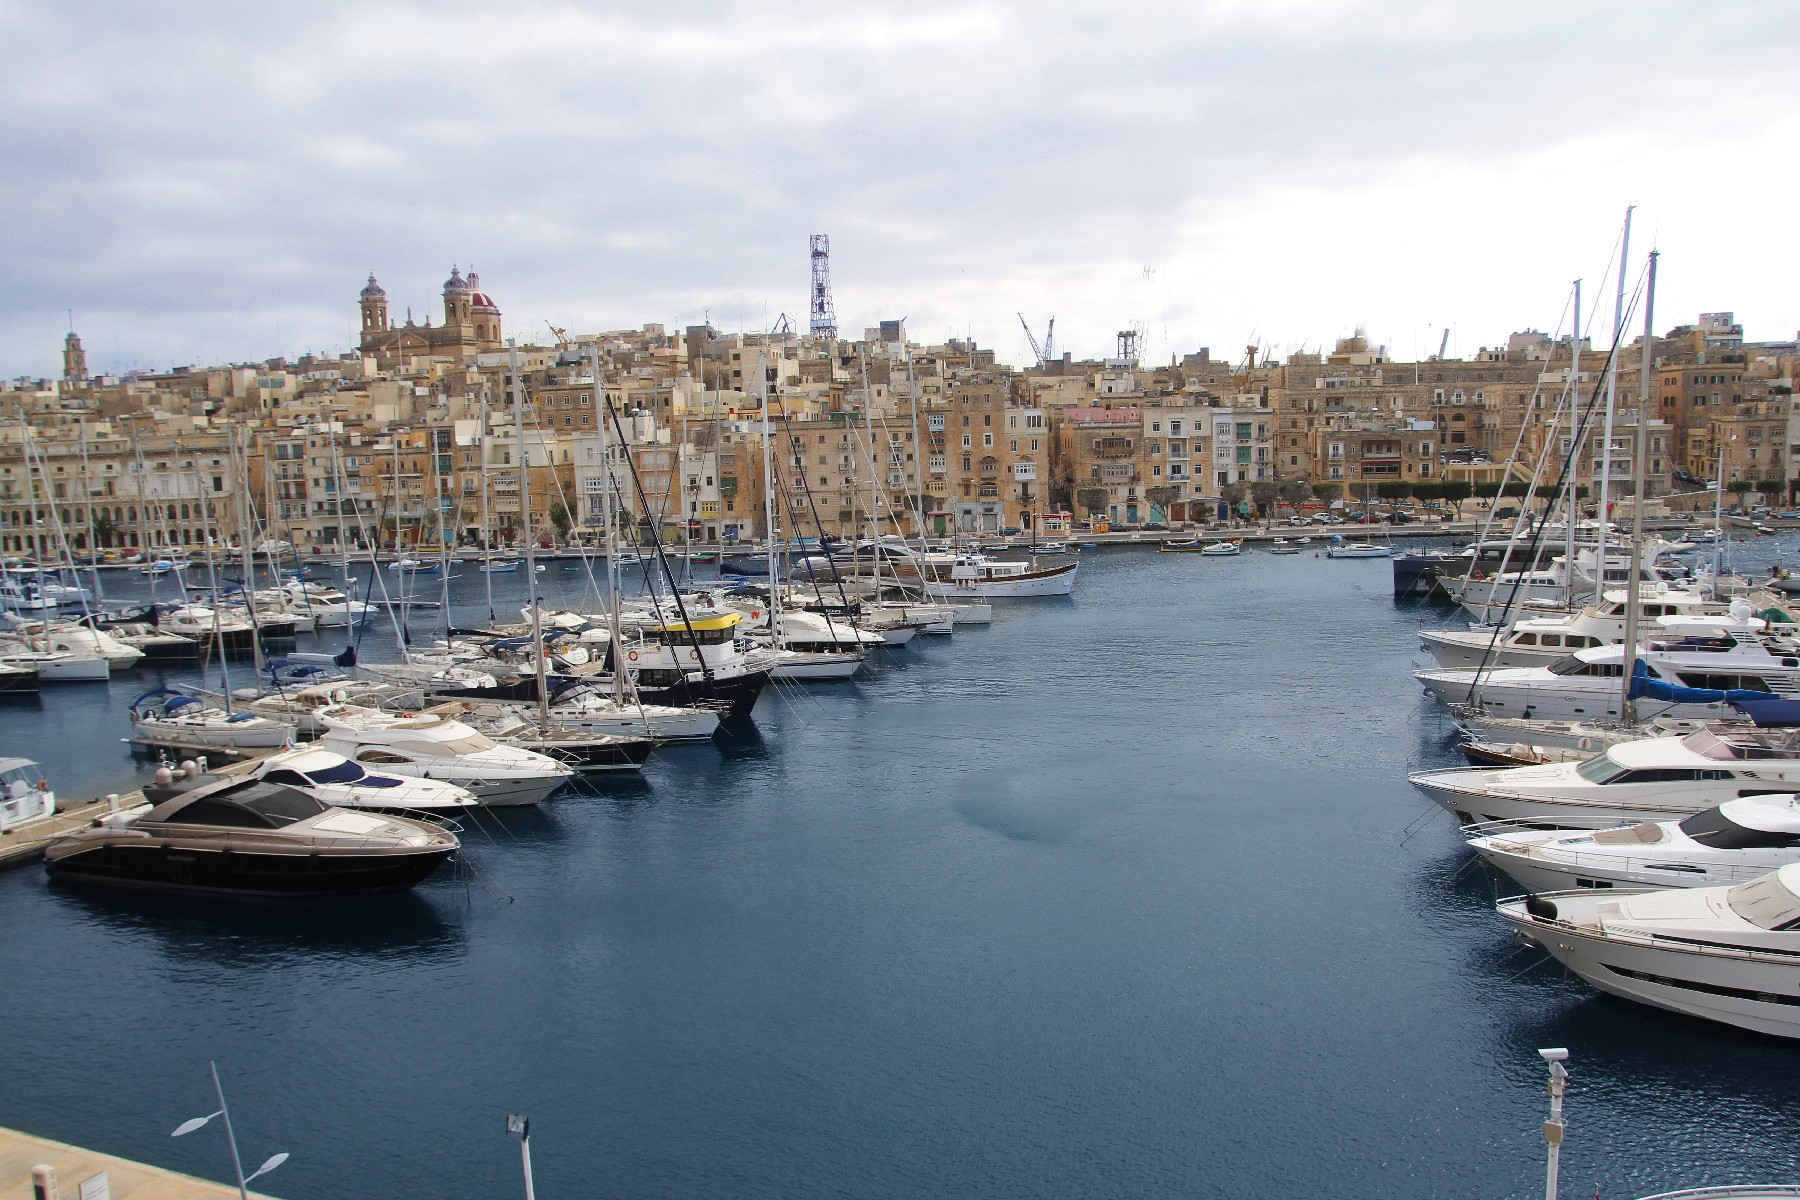 Apartment for Sale at Marina Seafront Apartment Other Malta, Cities In Malta Malta